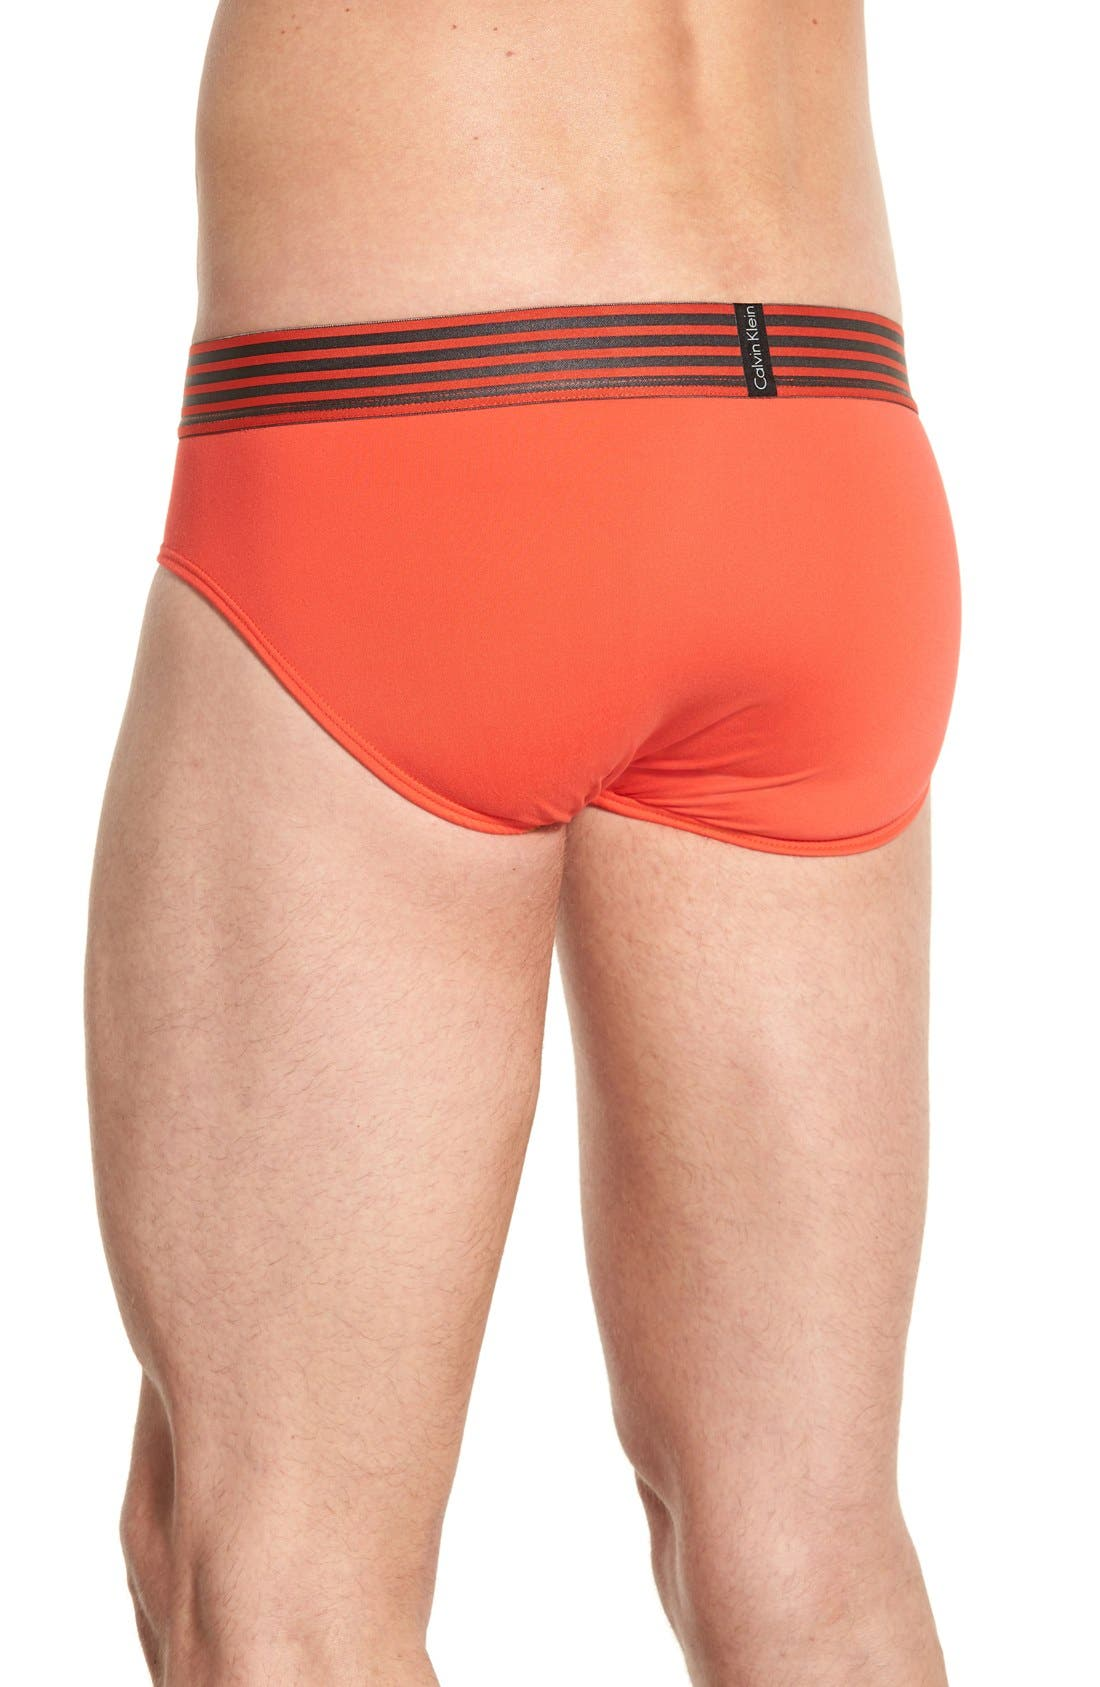 Iron Strength Briefs,                             Alternate thumbnail 20, color,